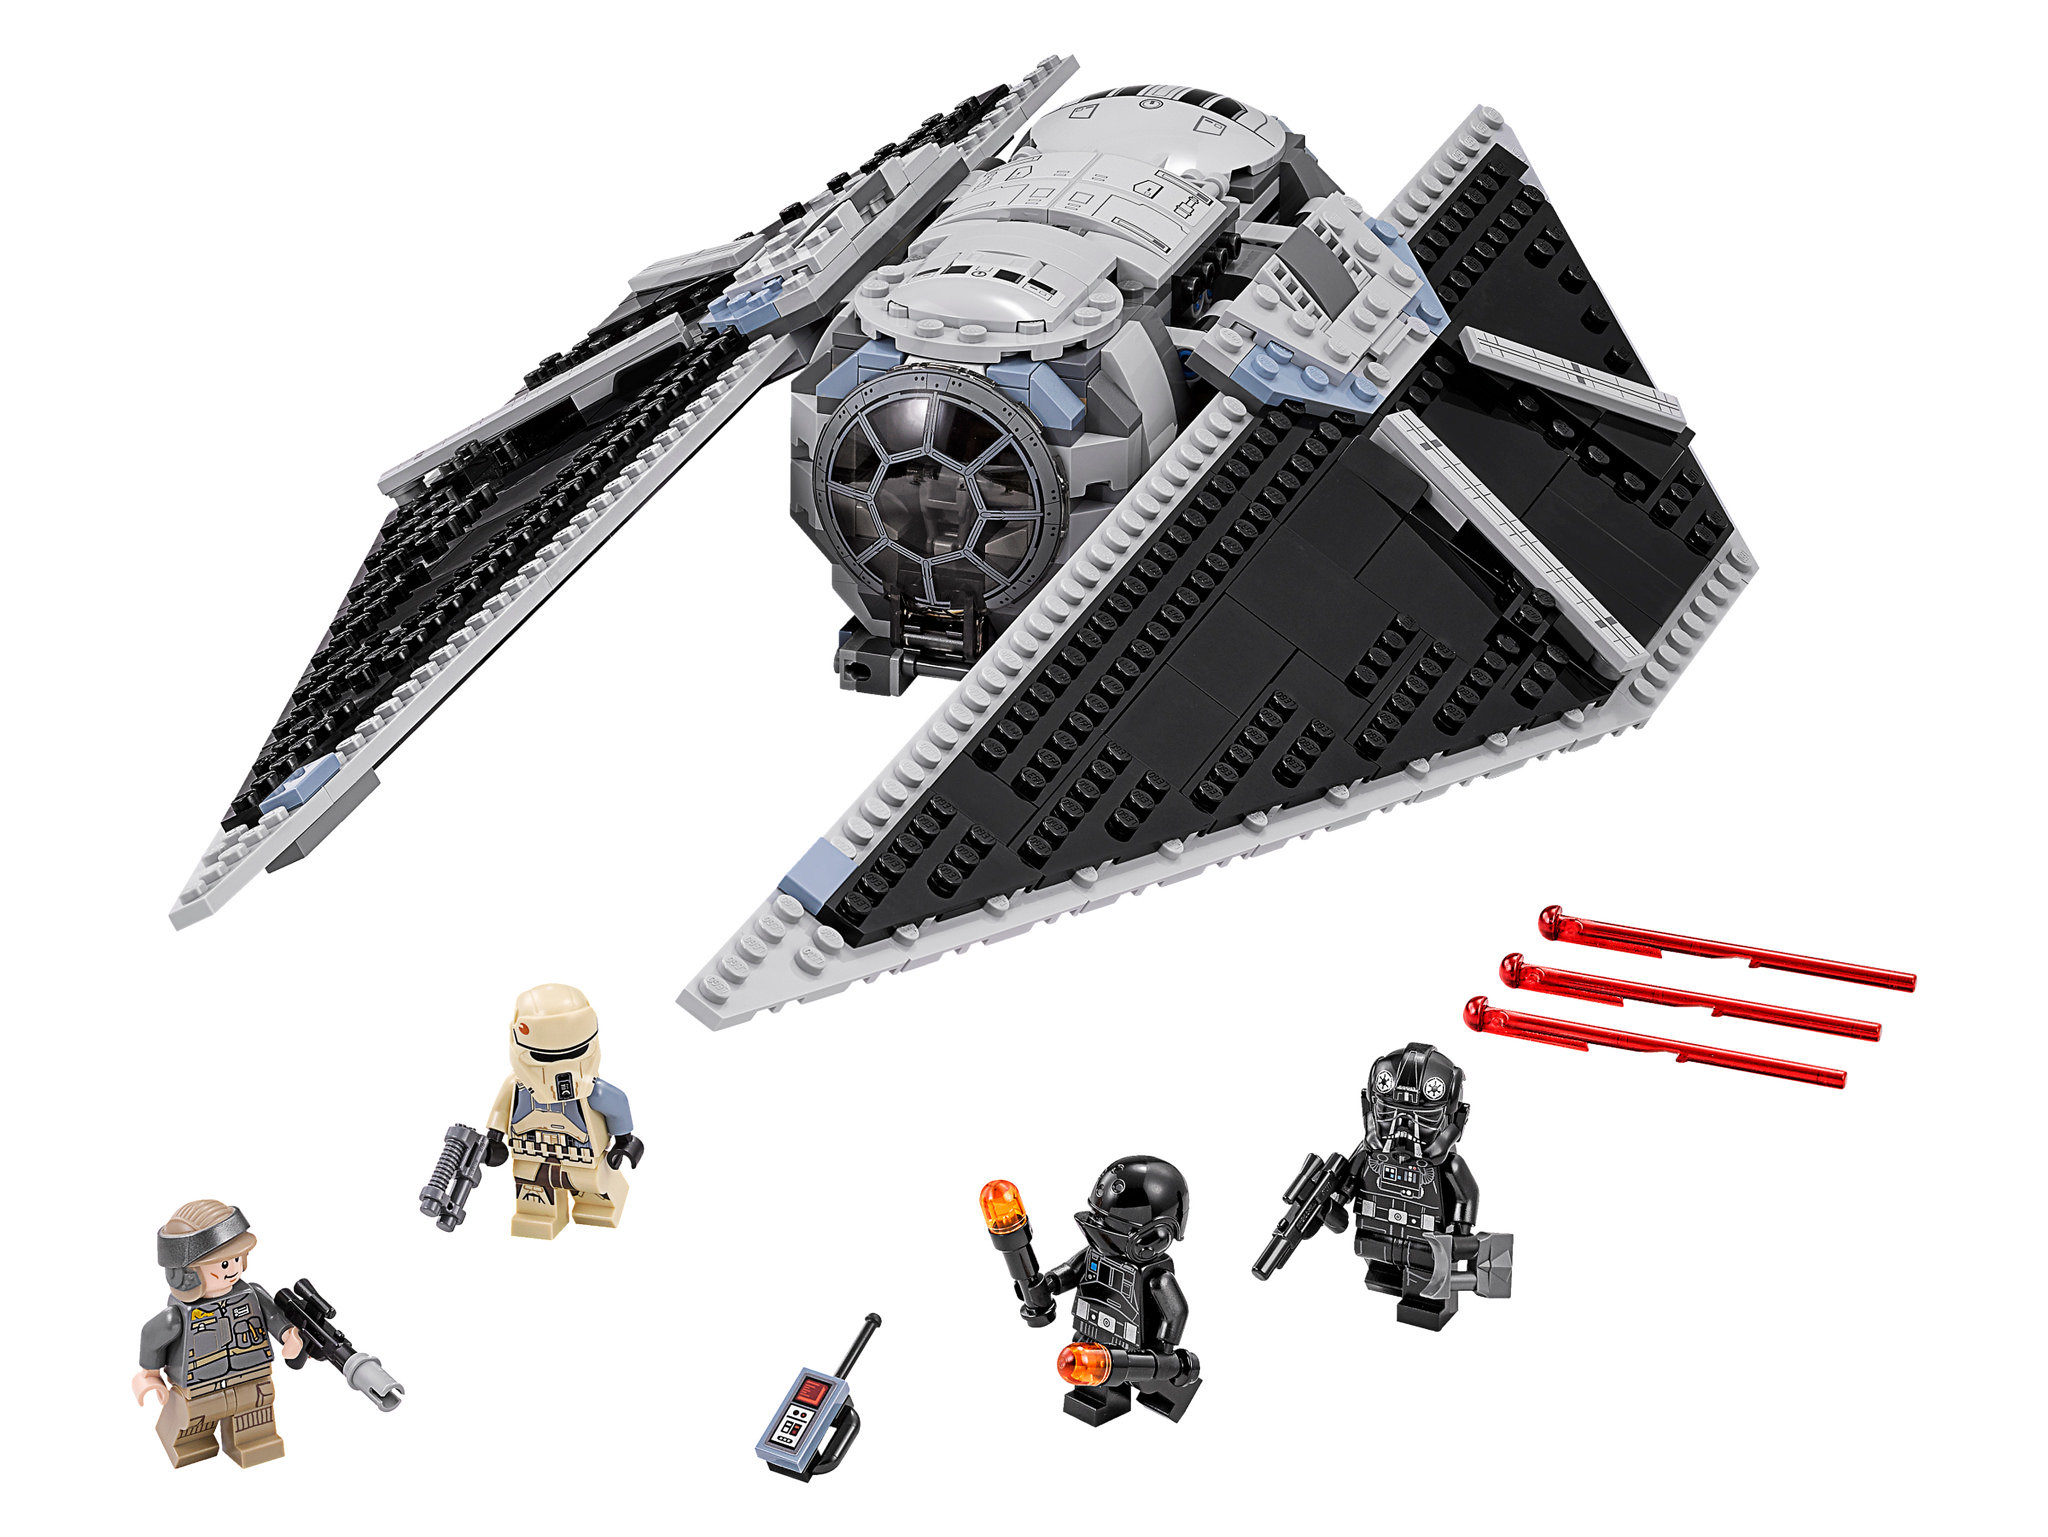 LEGO Star Wars 75154 - Tie Striker